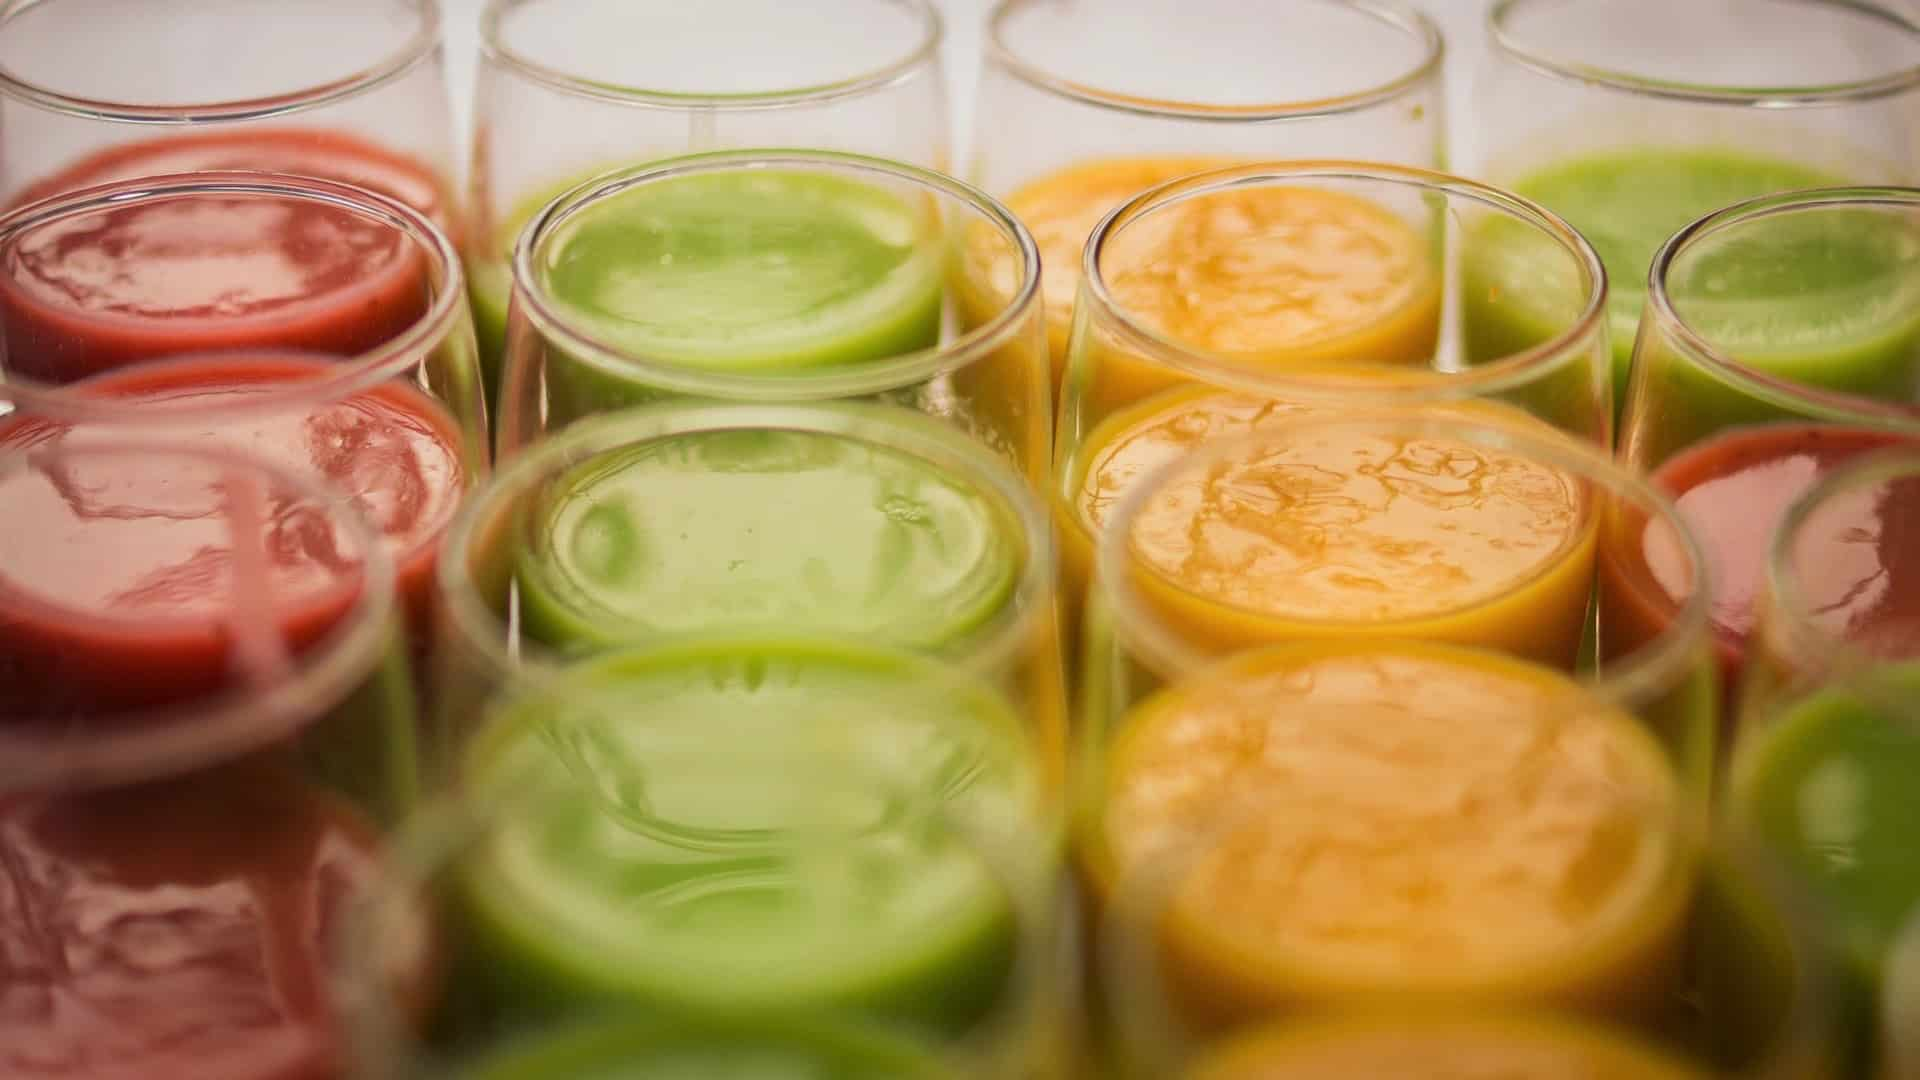 Liquid Calories: Do Smoothies Lead to Weight Gain?